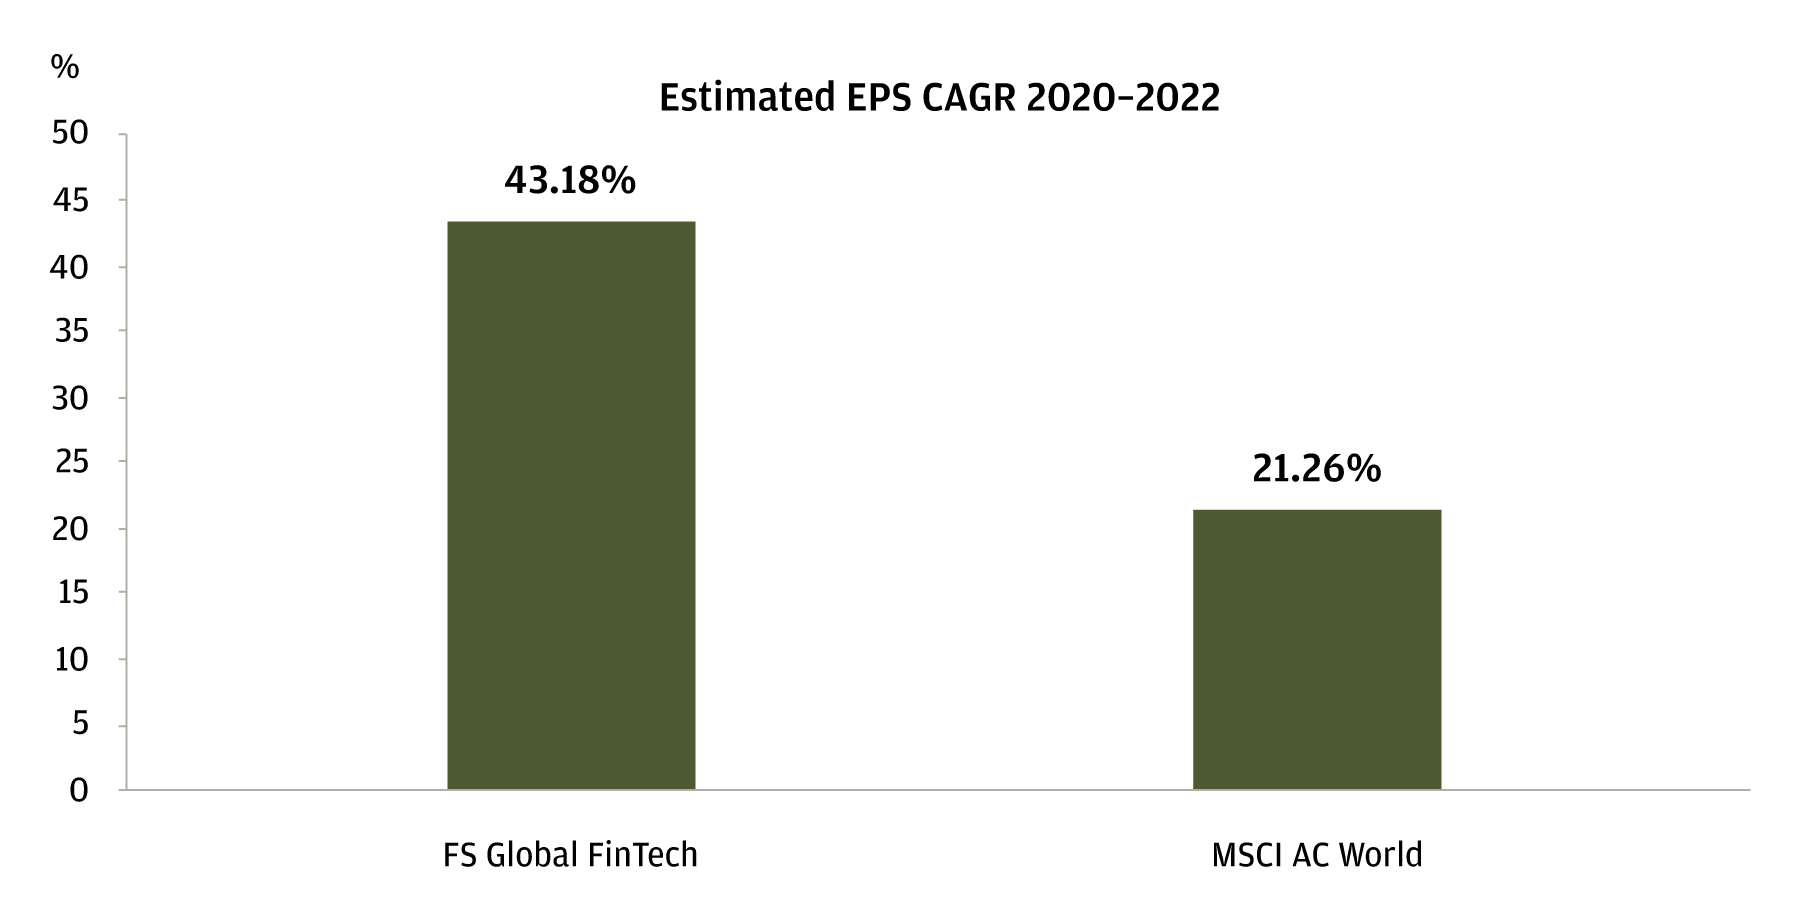 The bar chart shows the projected EPS CAGR from 2020–2022 for FS Global Fintech vs. the MSCI AC World. It shows that the Fintech sector is projected to significantly outperform the broader index in this time period.